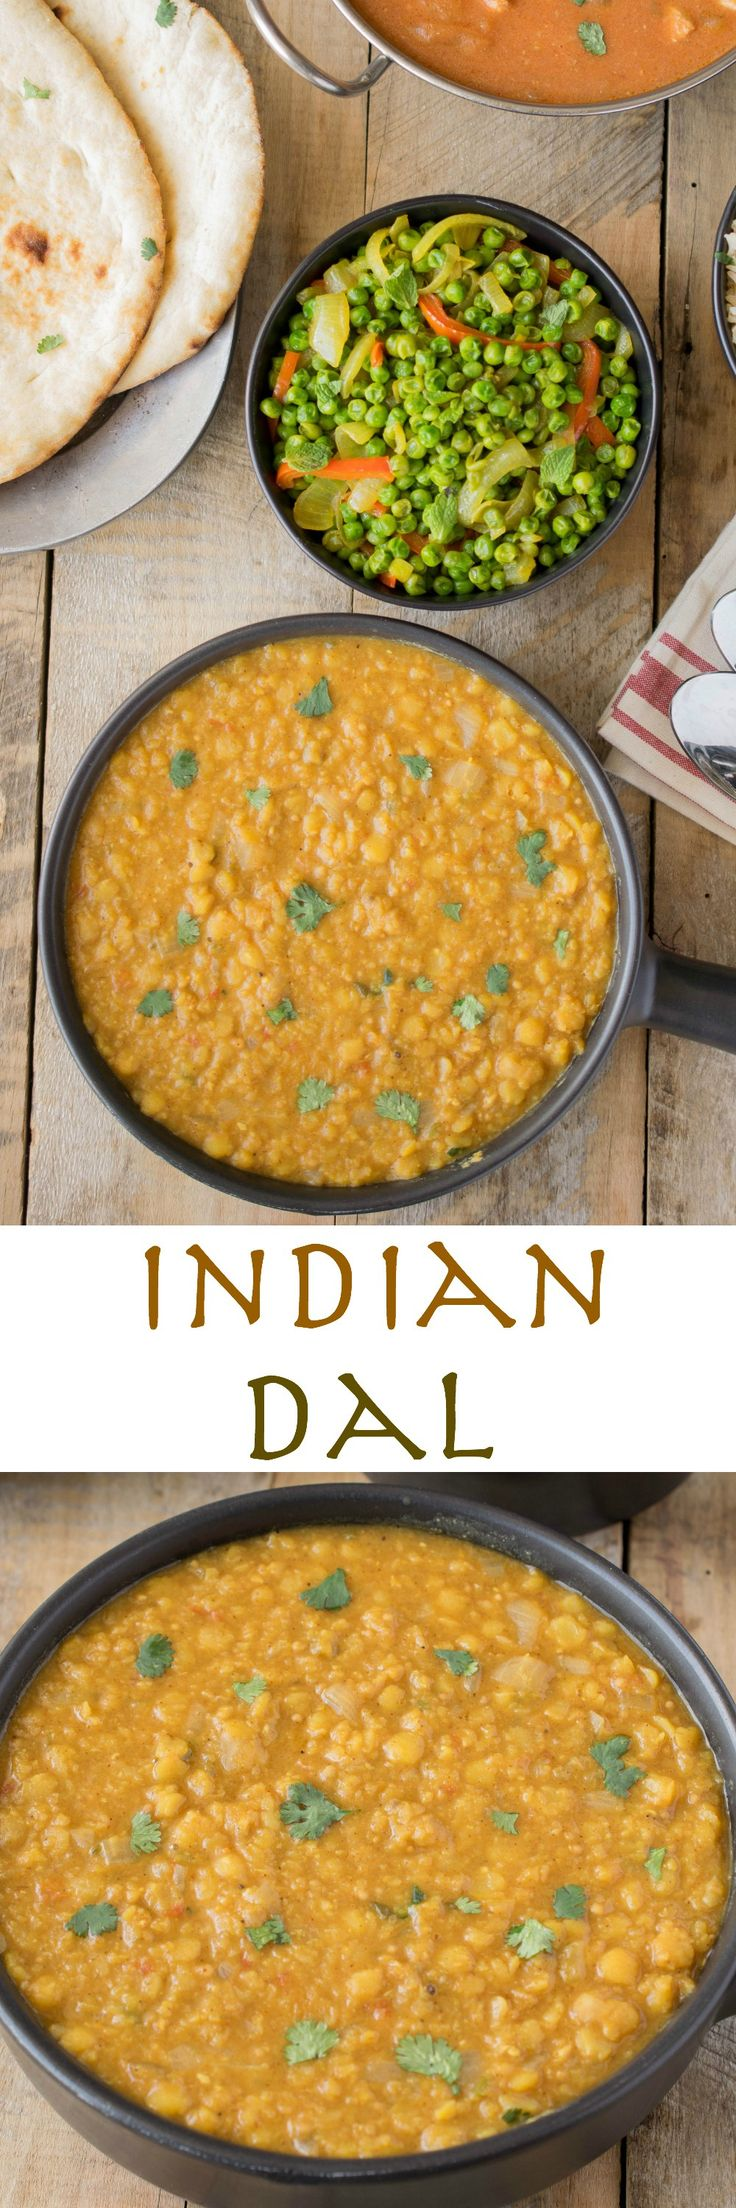 Indian dal is an easy and very flavorful side dish made from split peas or lentils, tomato, jalapeño and lots of spices.